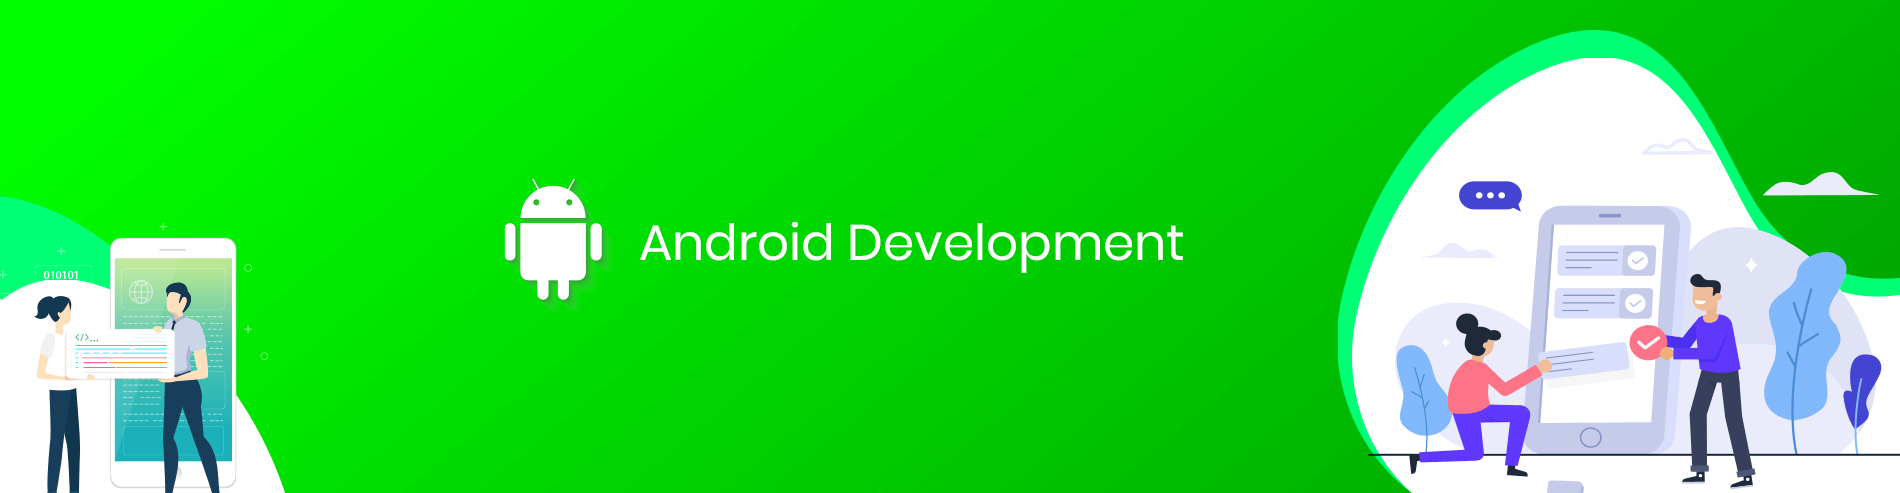 Android Developement